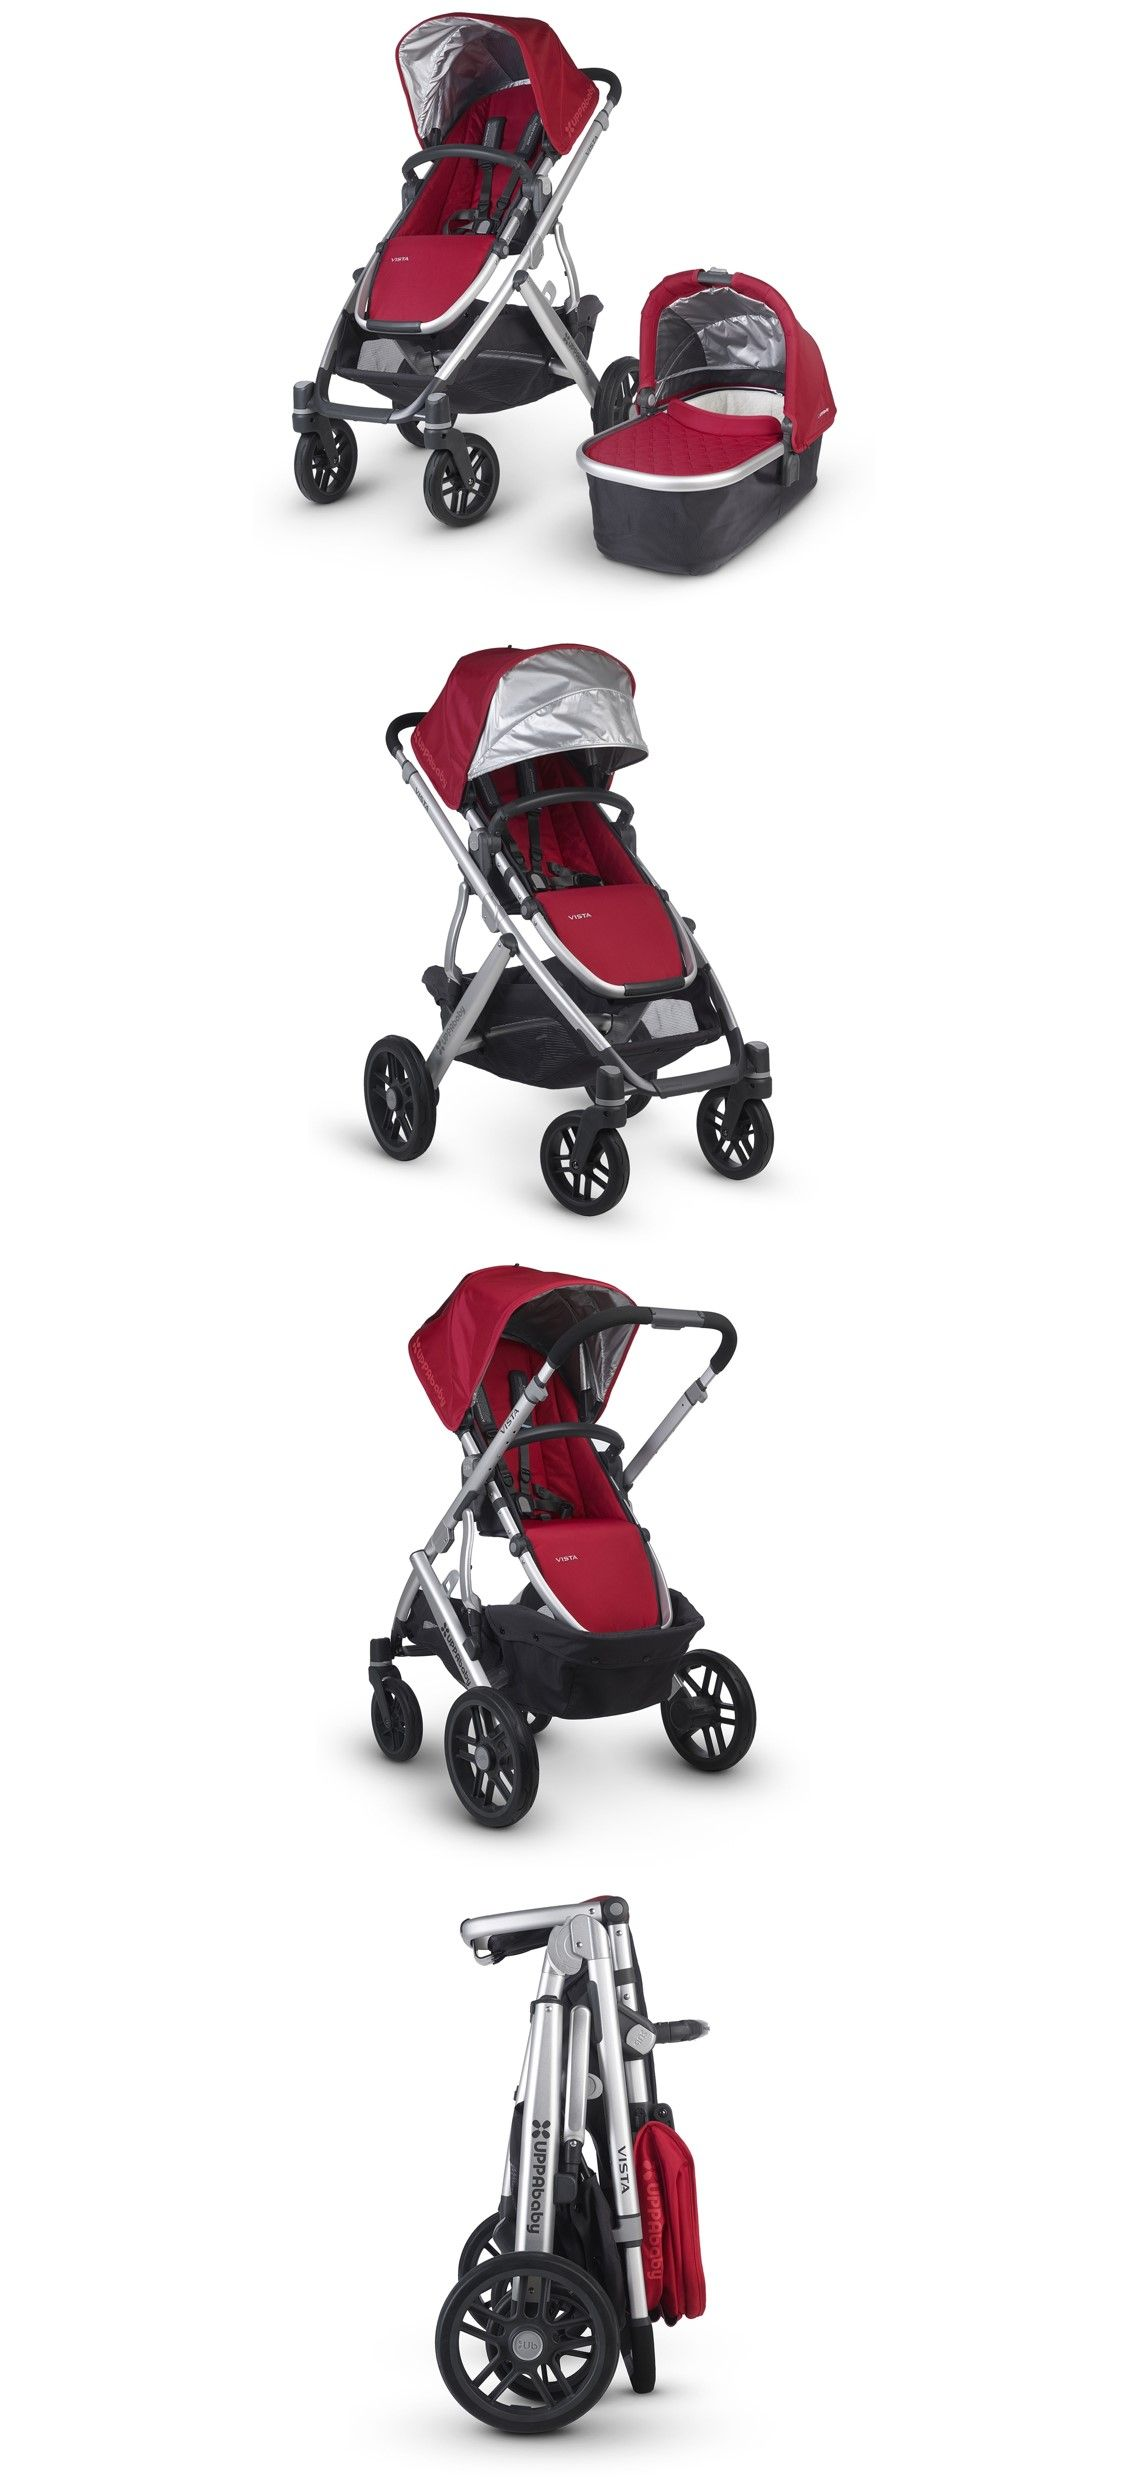 UPPAbaby Vista 2015 with Carrycot Denny Red. Building on